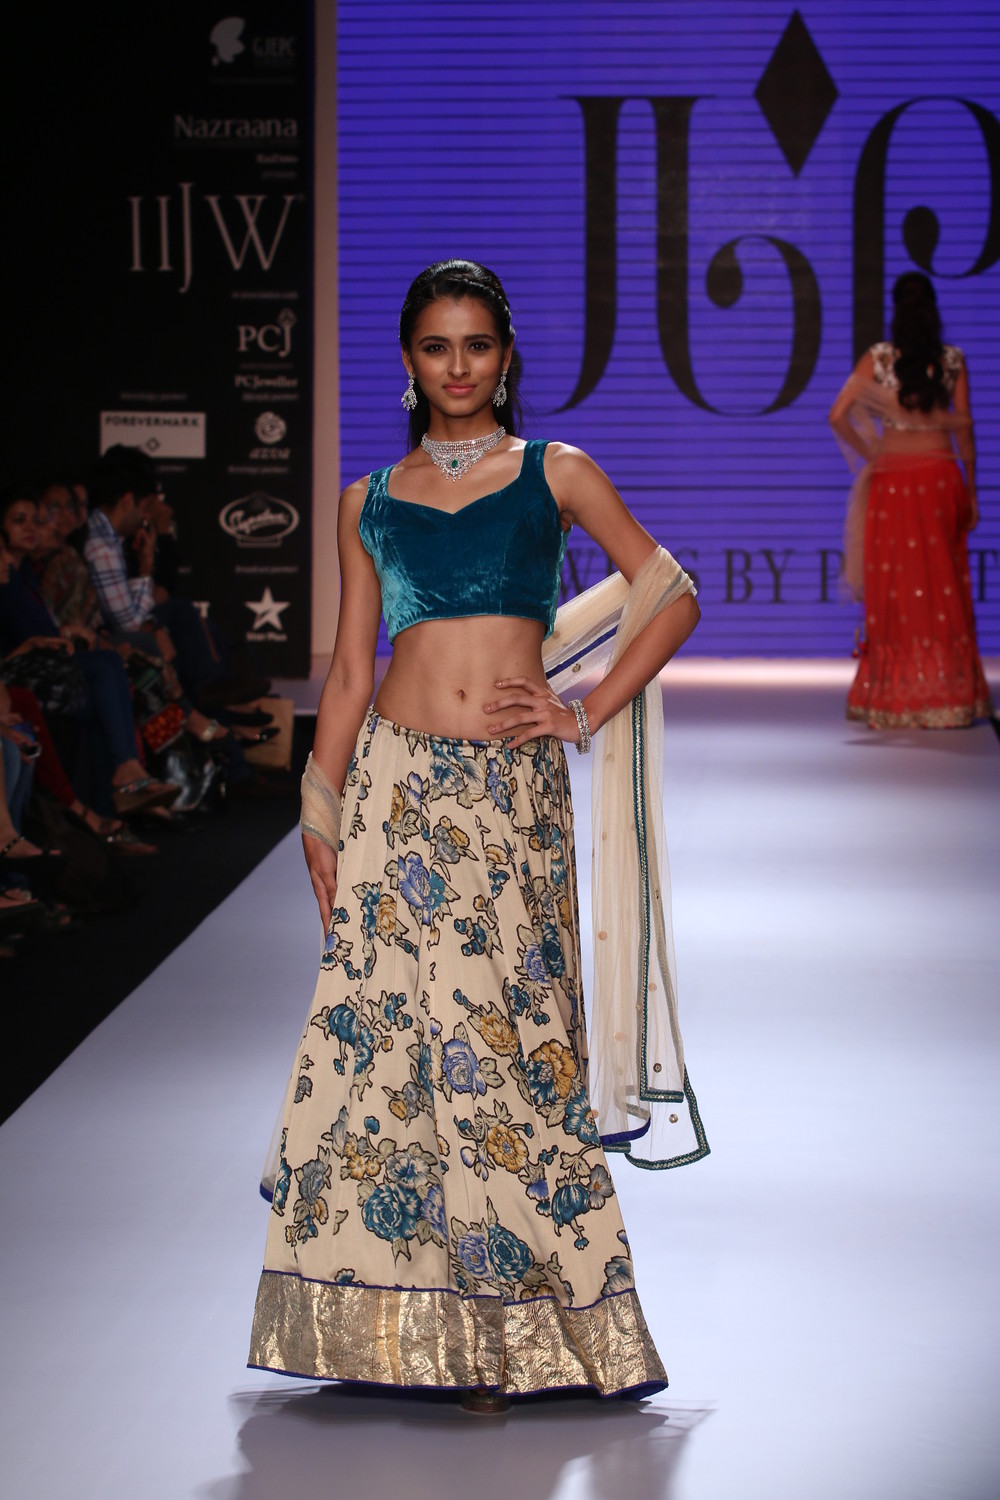 Seen at India International Jewellery Week - A model walking for Jewels by Preeti 1.JPG